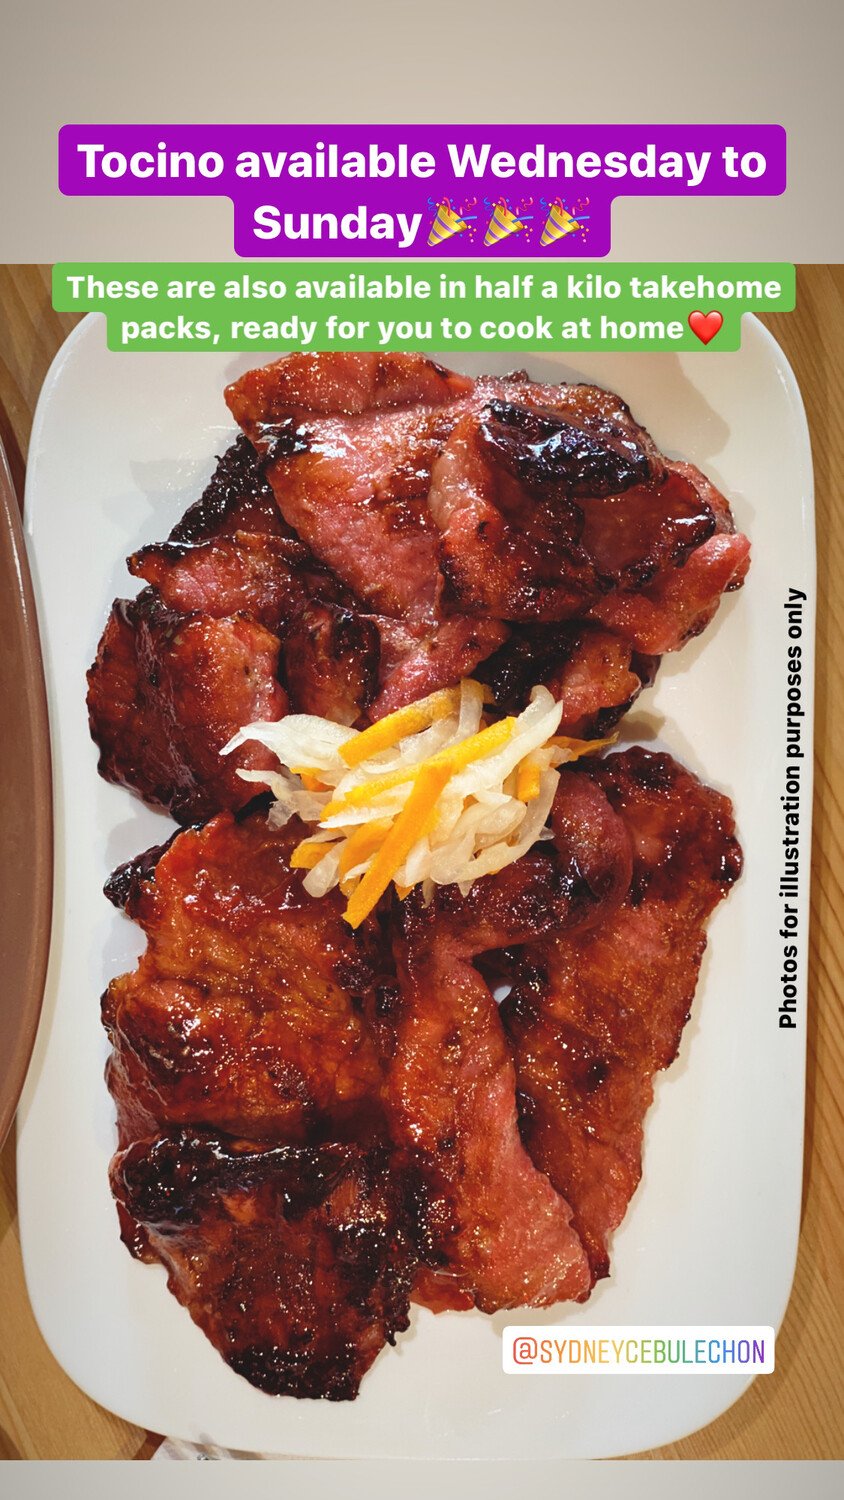 Tocino - Take Home Pack (Cook-It-Yourself) *half kilo*